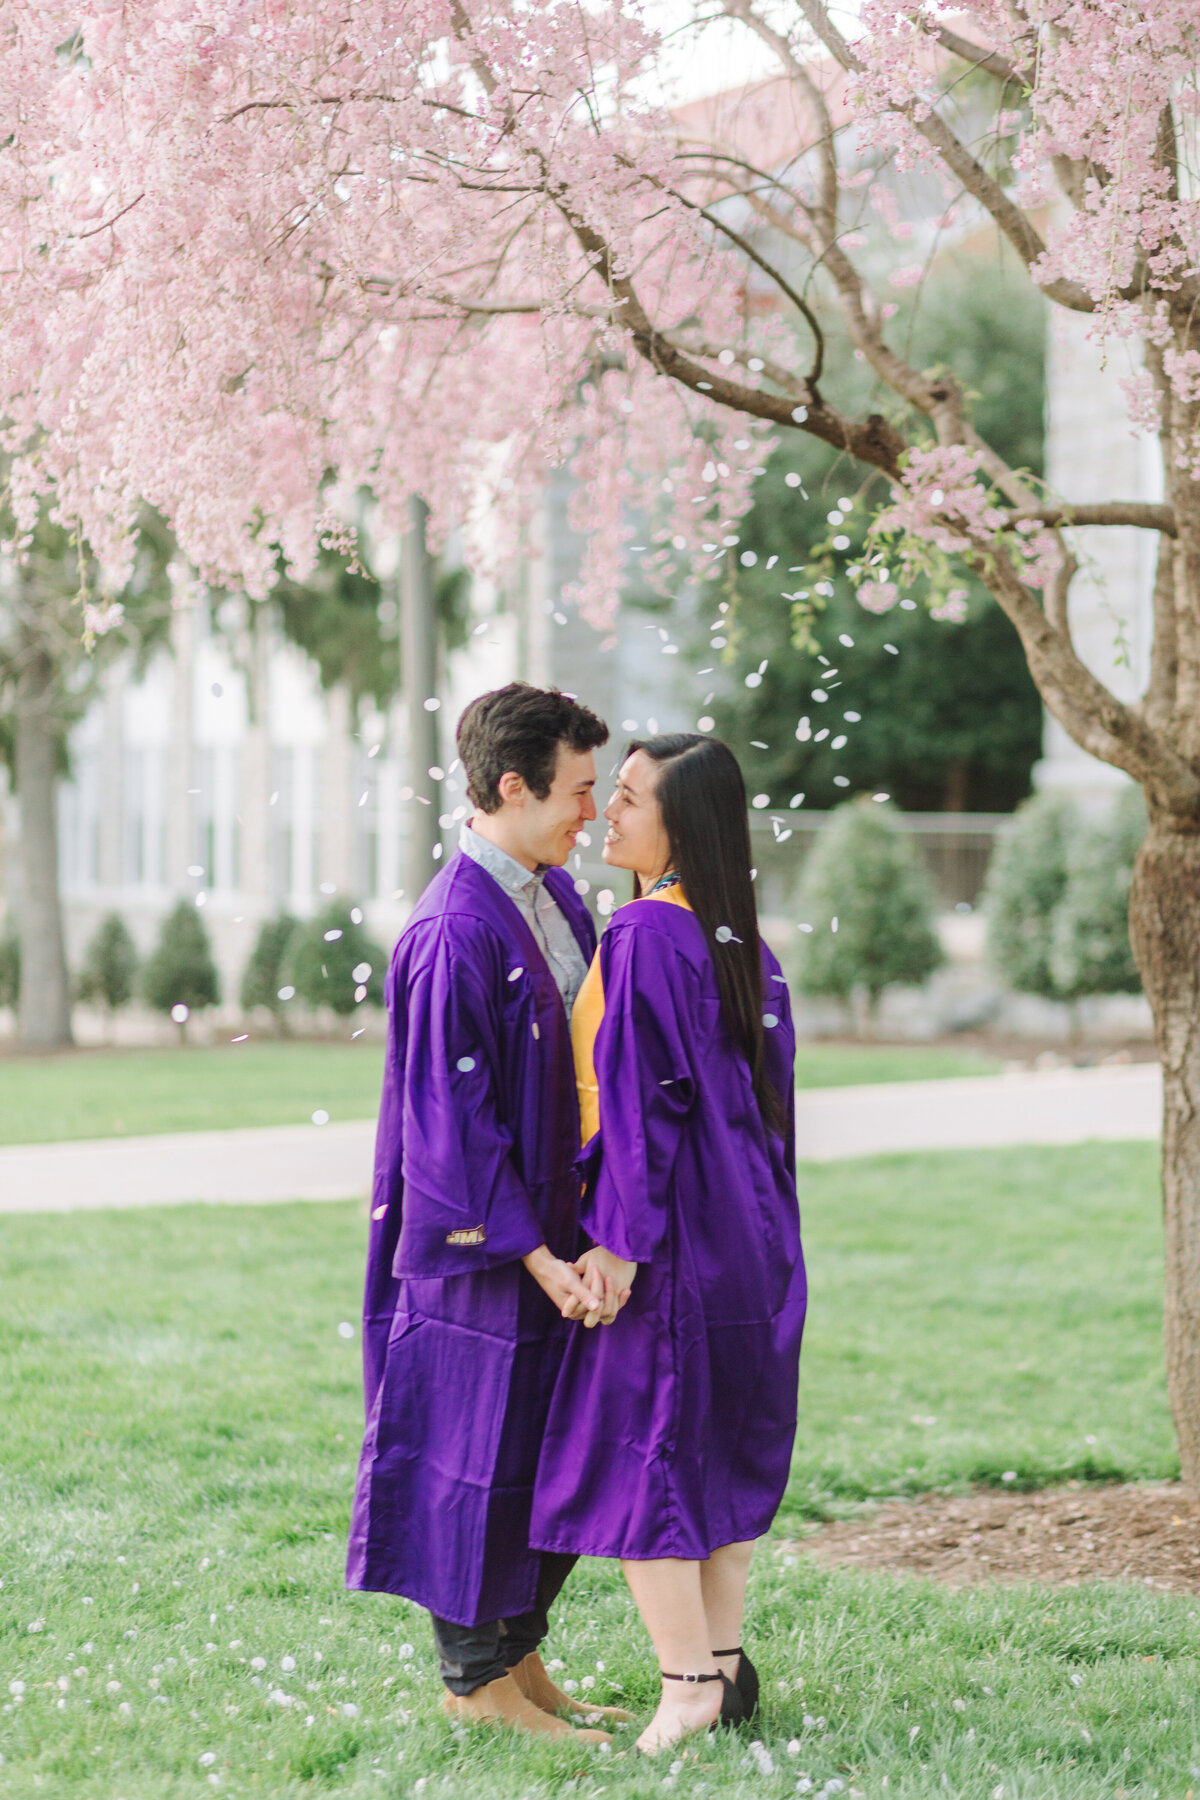 BeckyChen_AngelikaJohnsPhotography_JMU_JamesMadisonUniversity_GraduationSeniorPhotos-4075